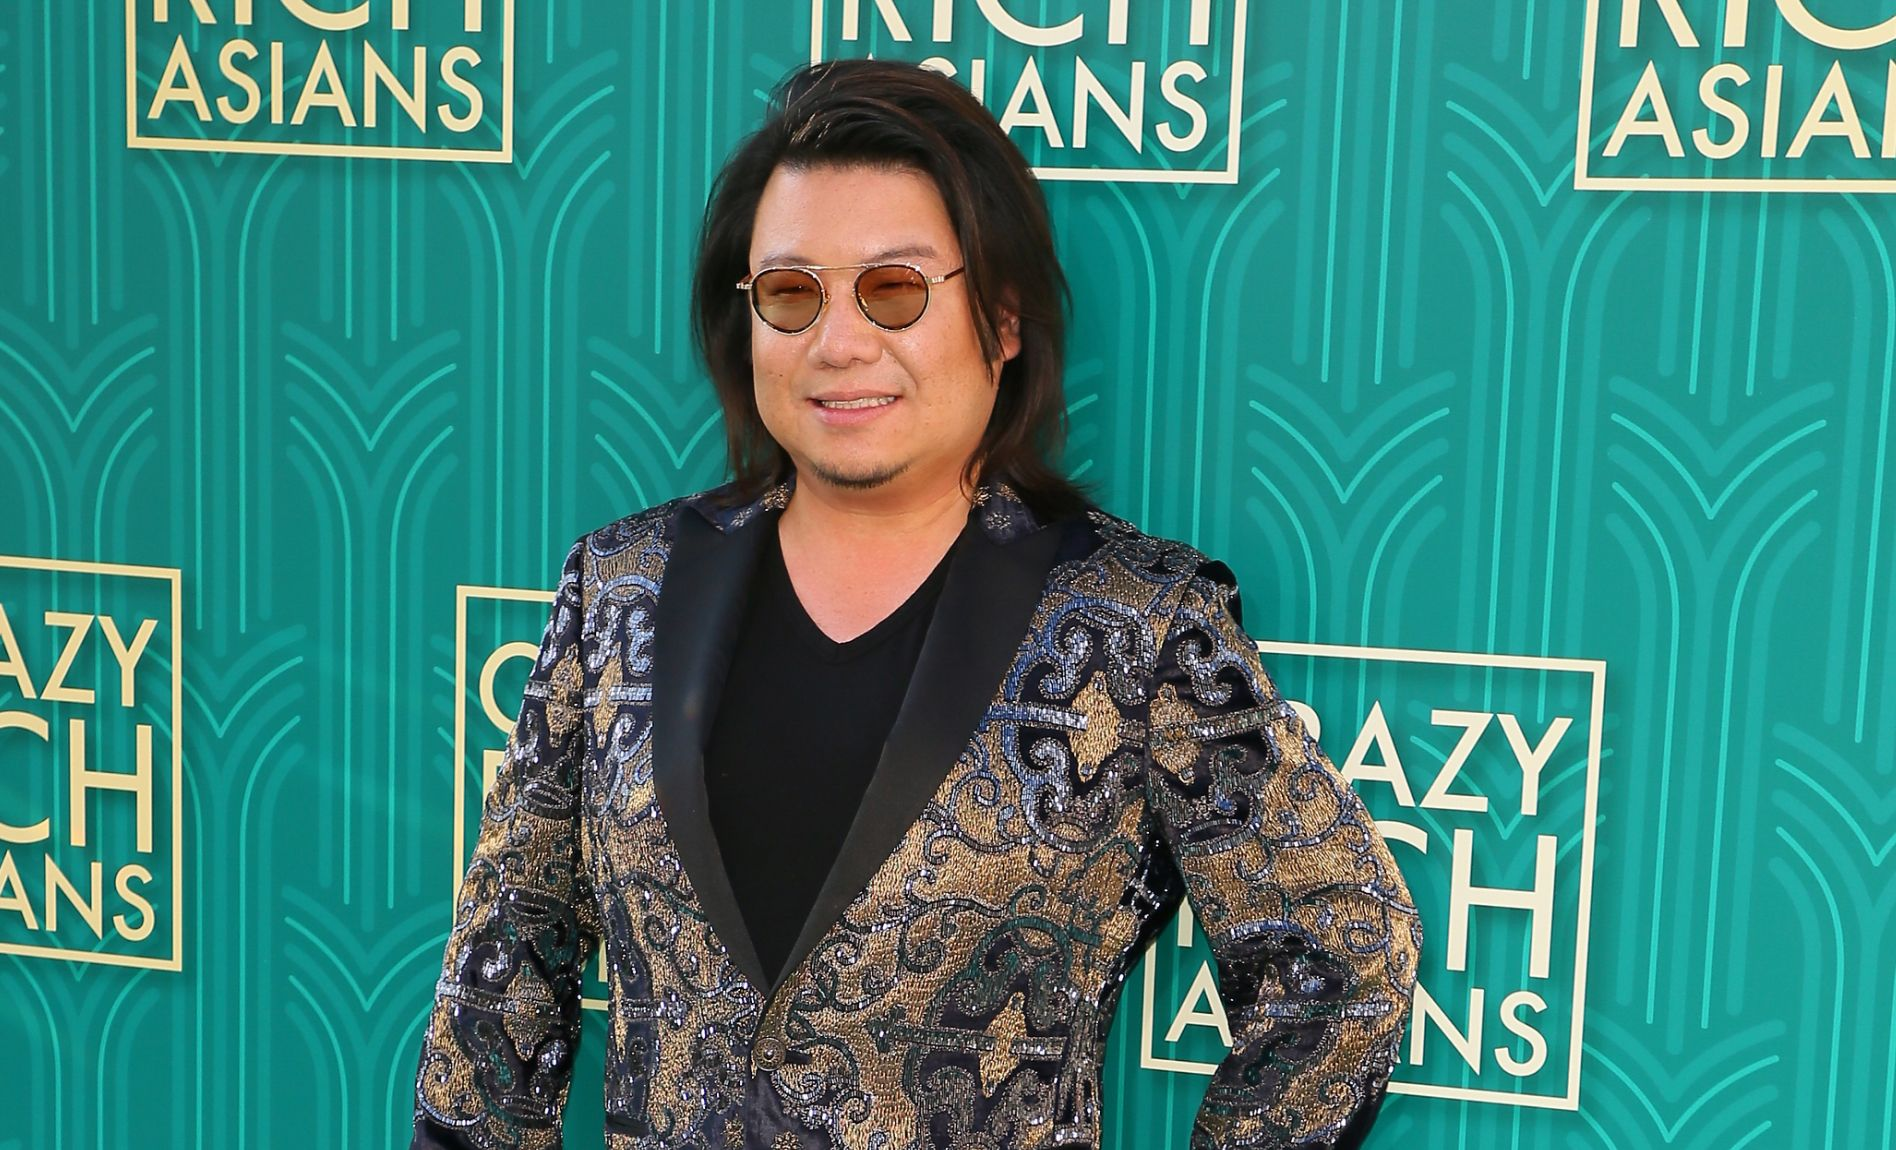 """Novelist Kevin Kwan, author of """"Crazy Rich Asians"""", attends the premiere of Warner Bros Pictures' """"Crazy Rich Asians"""" in Hollywood, California, on August 7, 2018. (Photo by JEAN-BAPTISTE LACROIX / AFP)"""